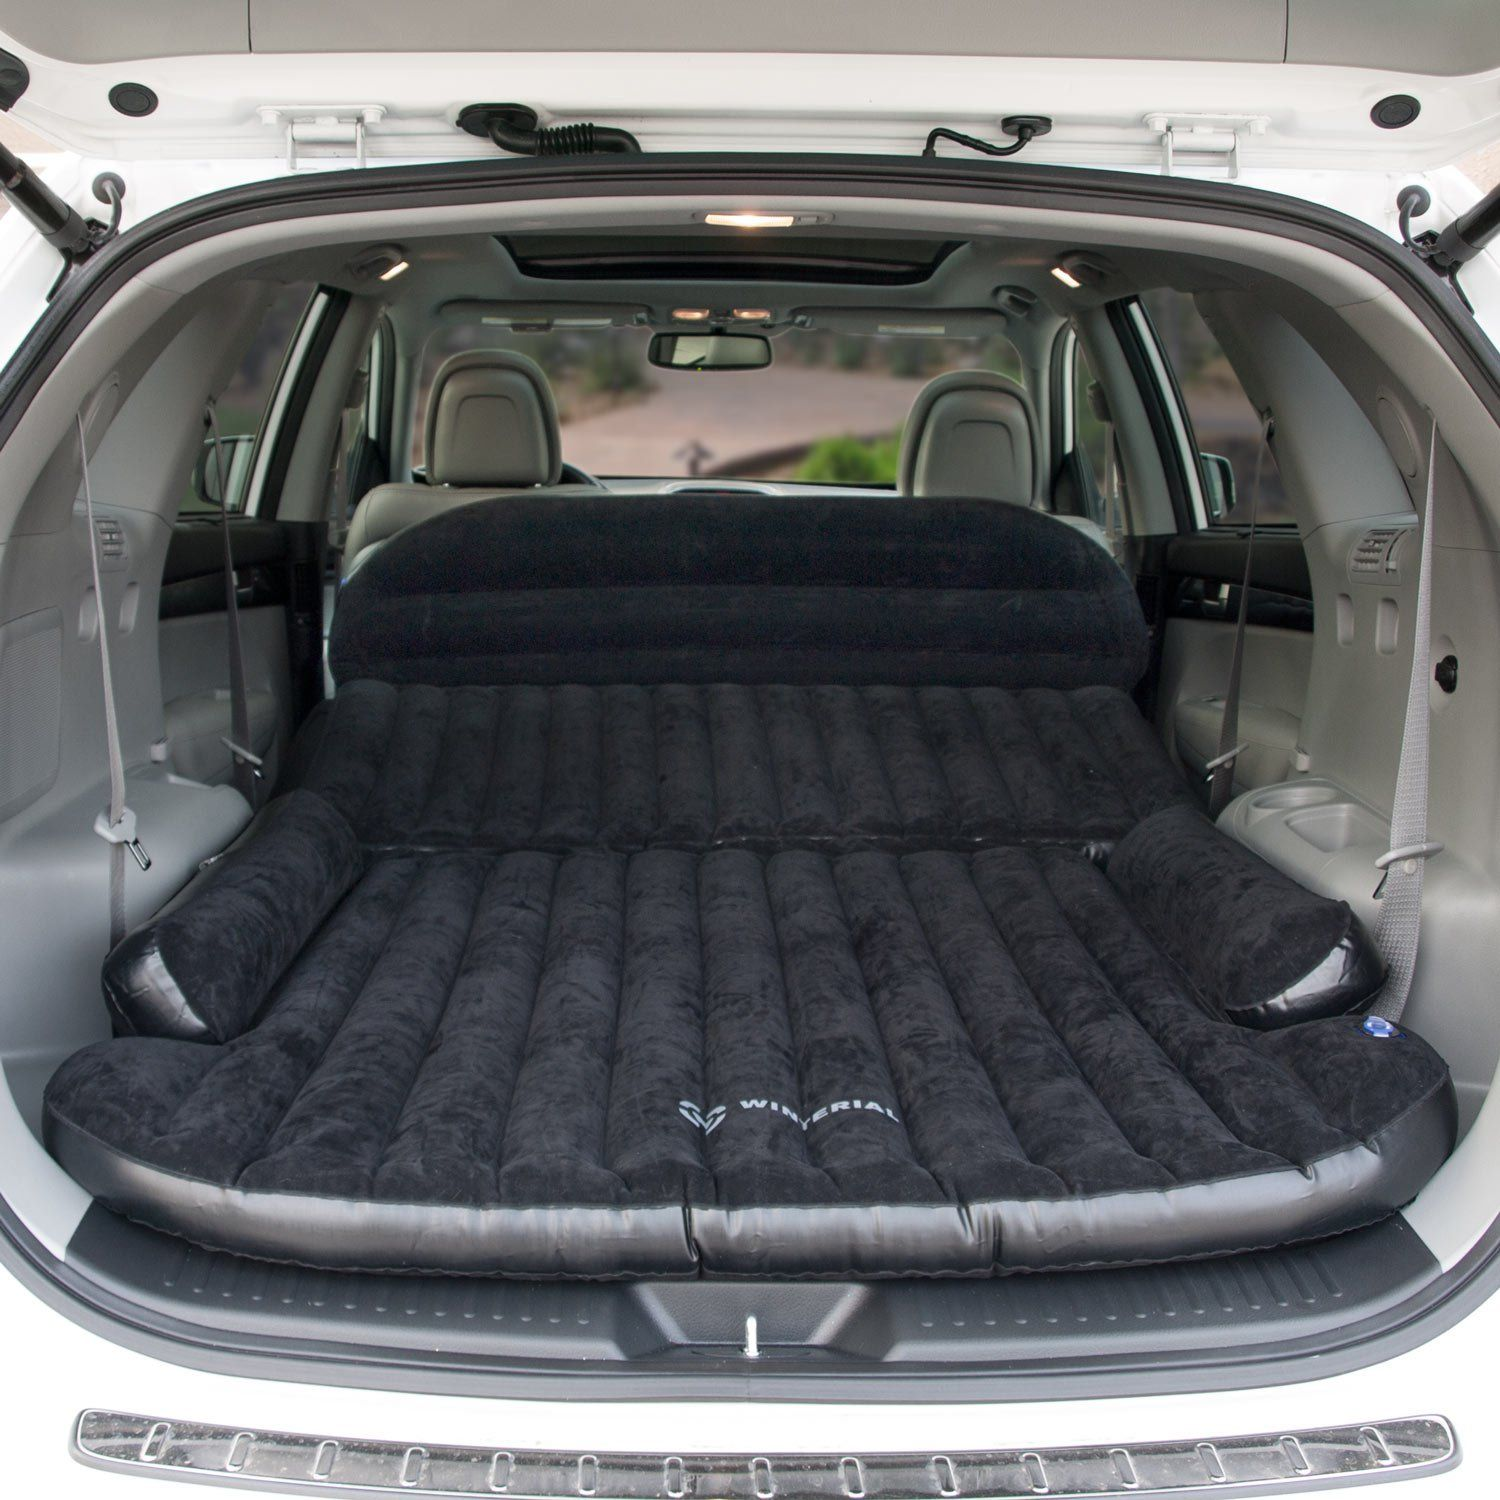 Winterial SUV Heavyduty Backseat Car